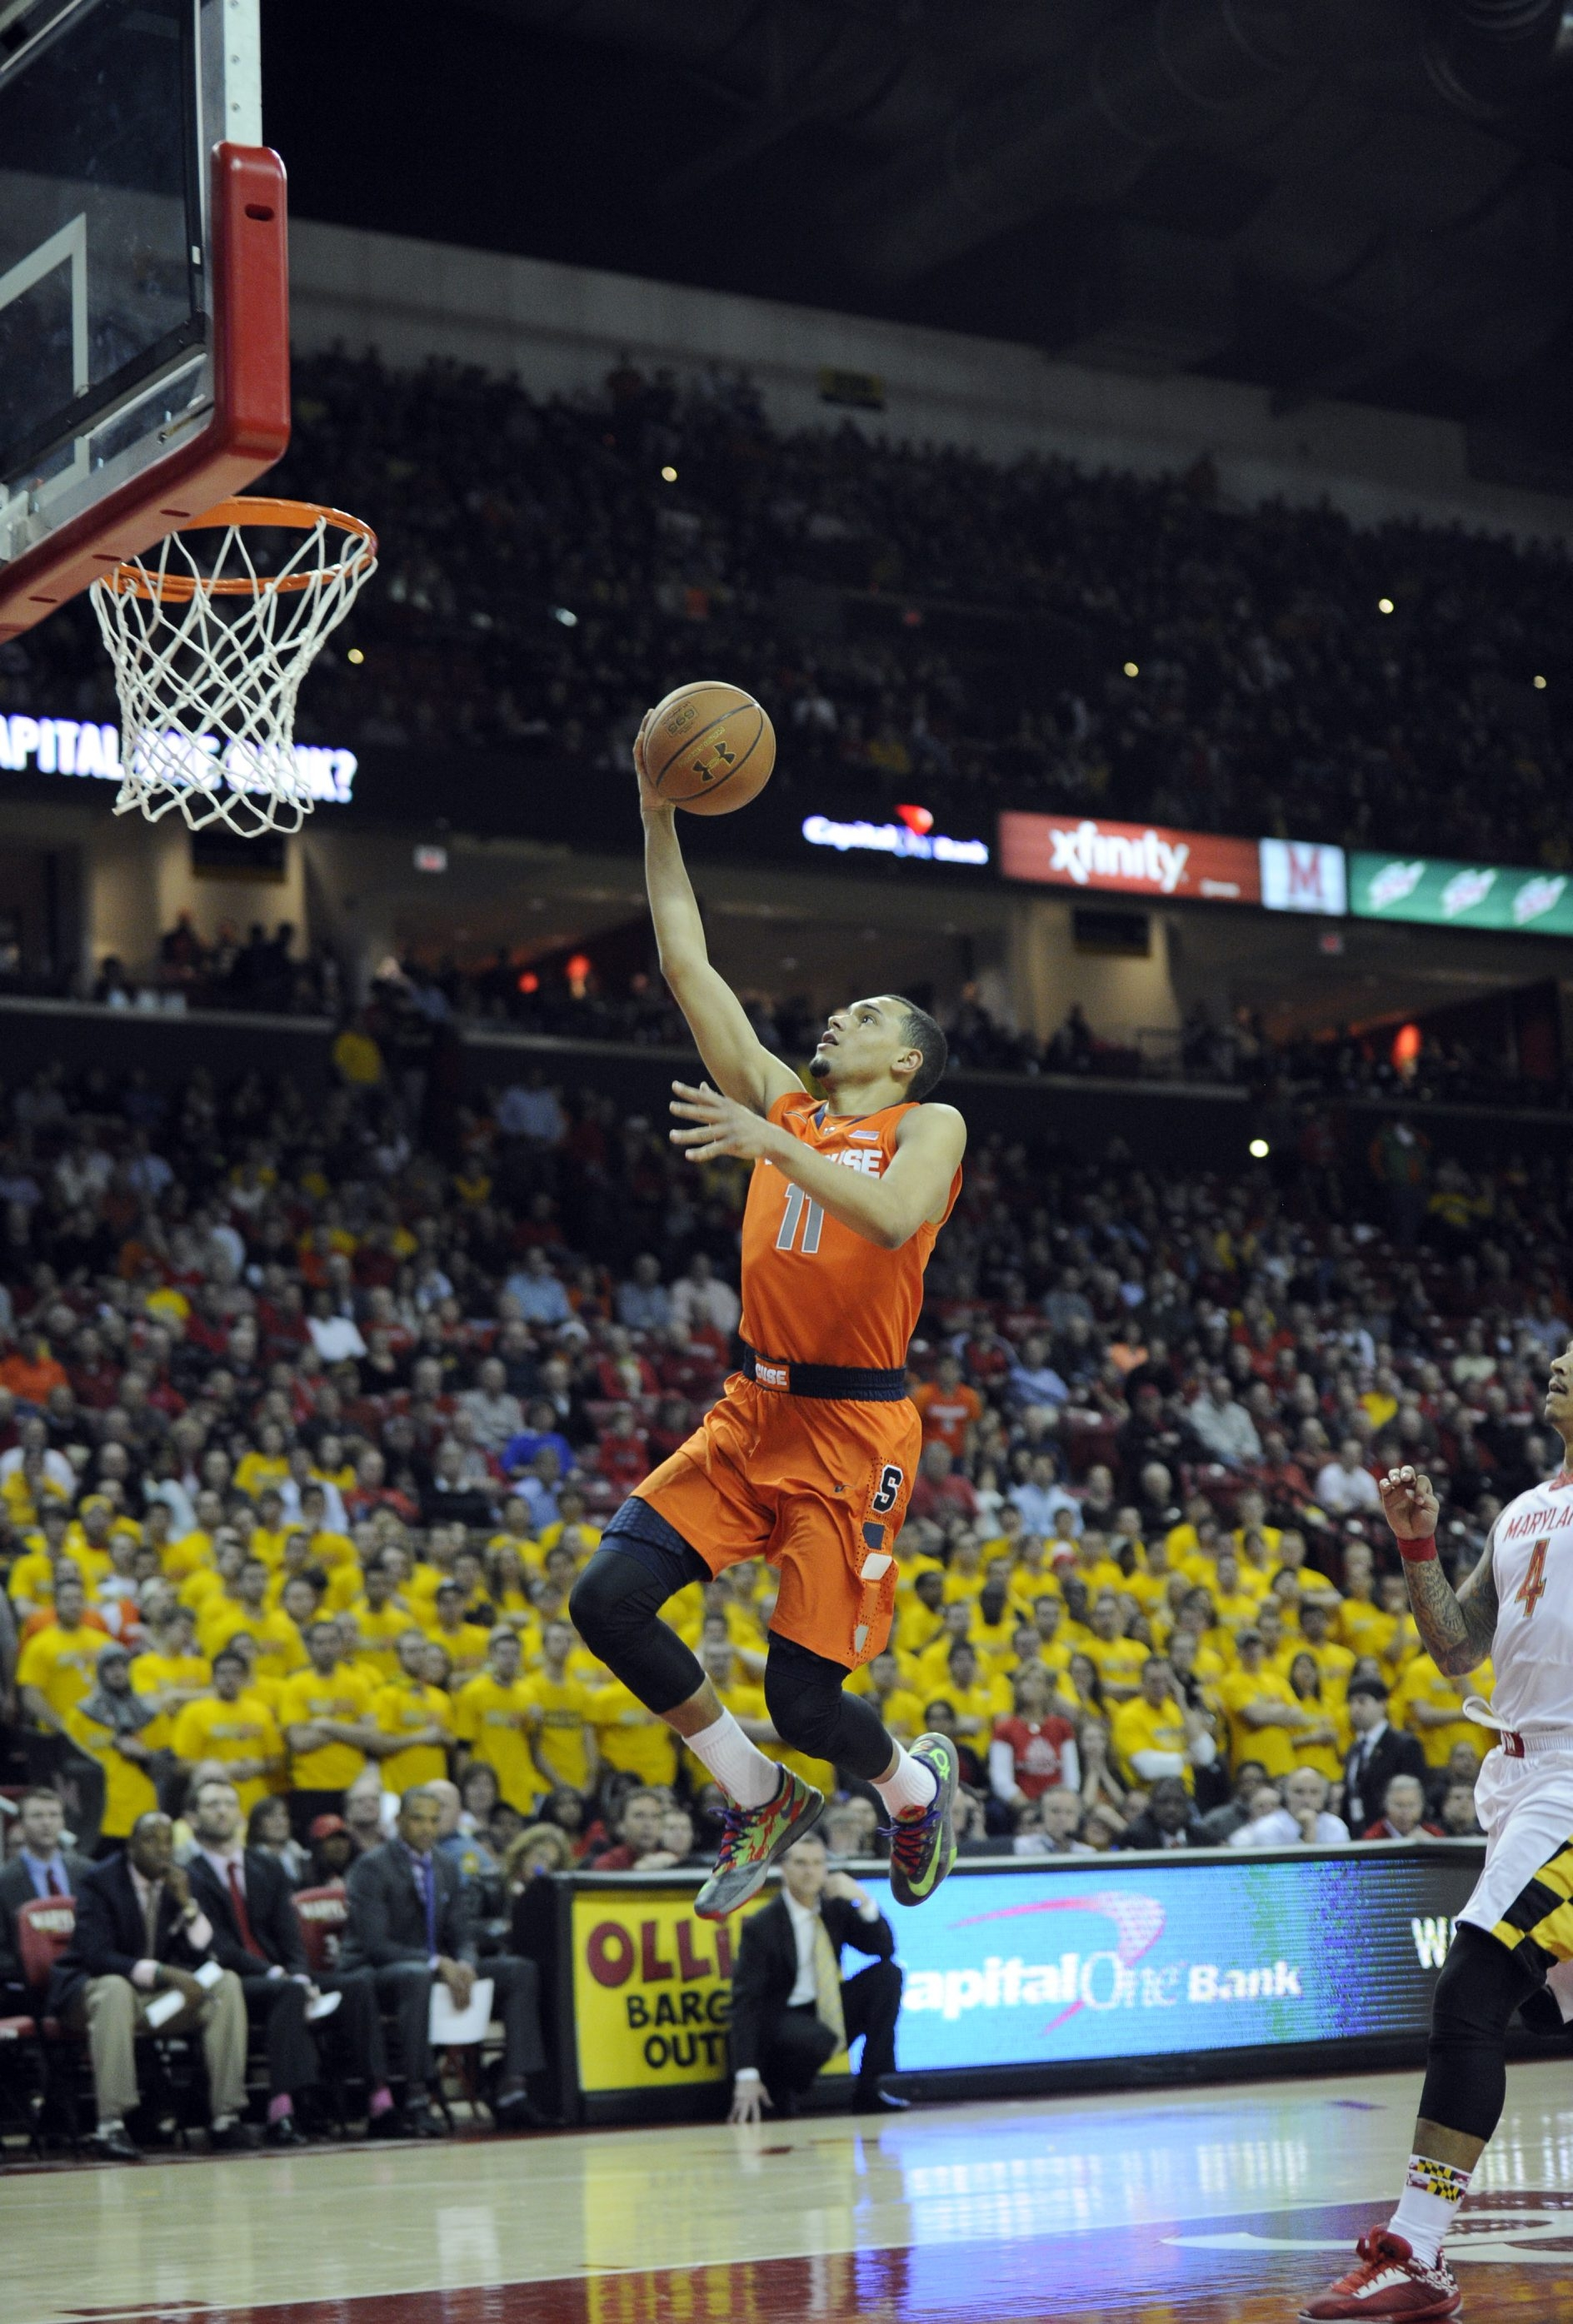 In a Syracuse program that has produced storied point guards, Tyler Ennis may turn out to be the best of them all.